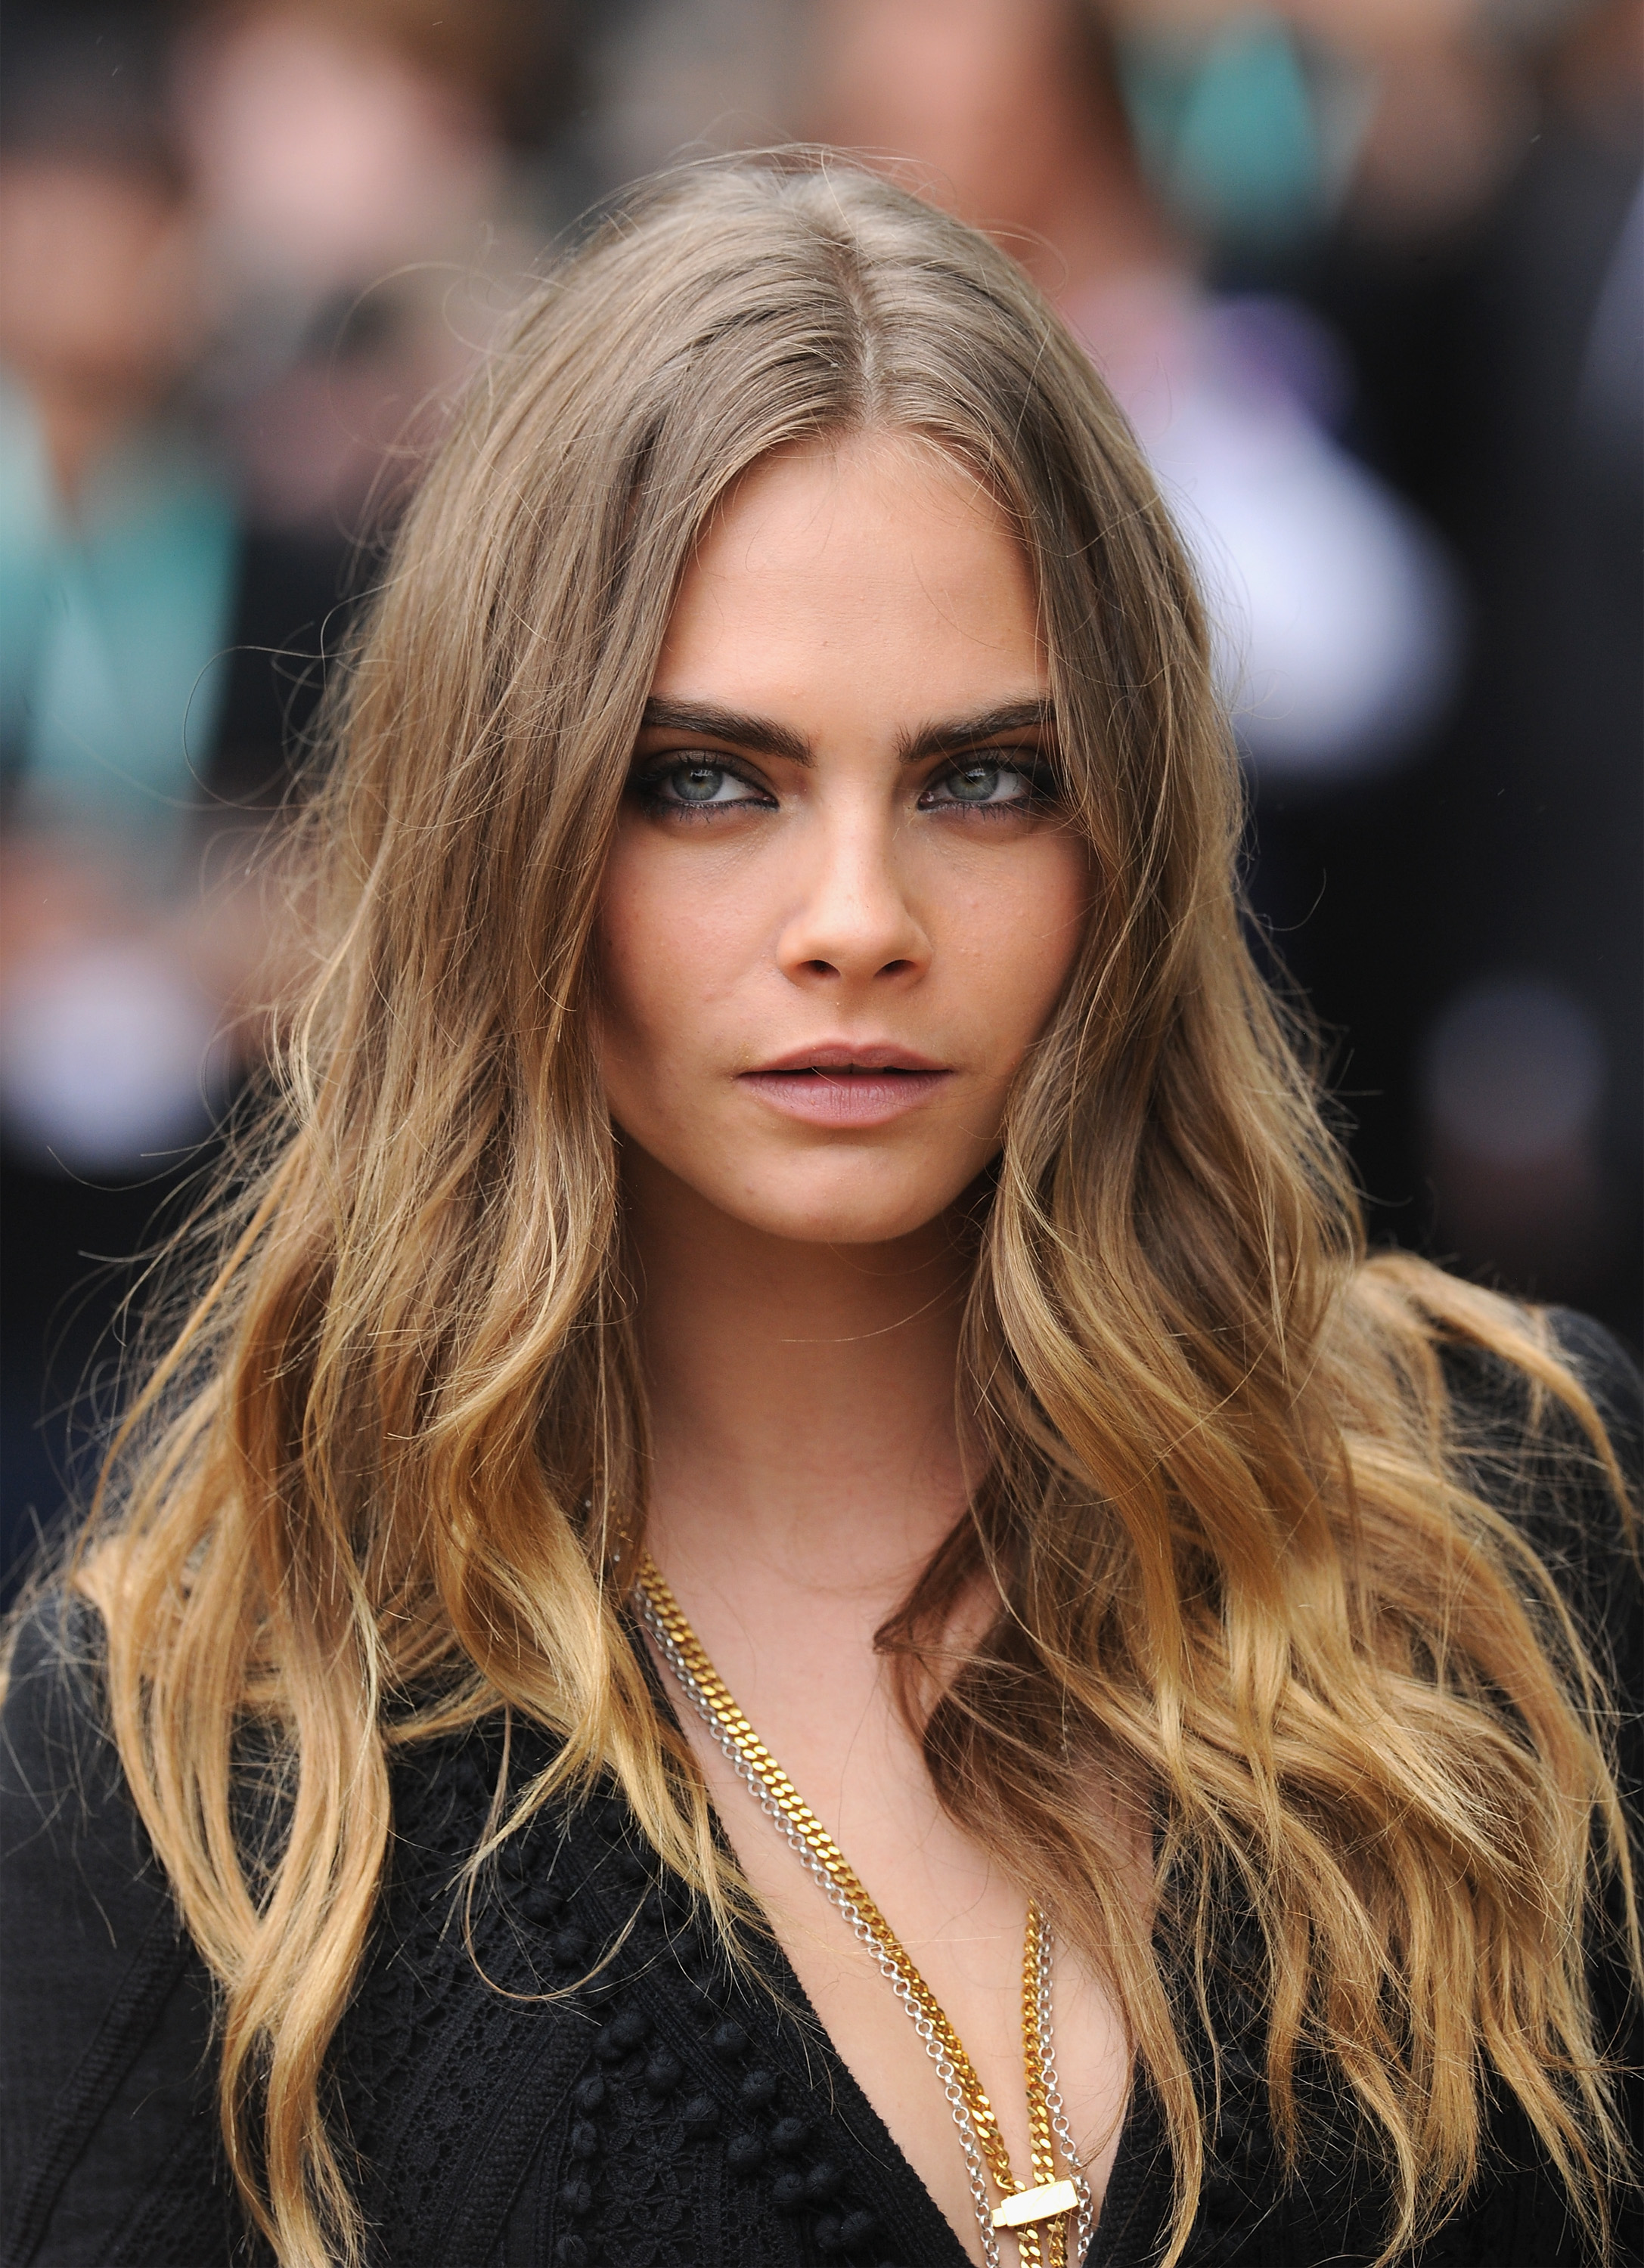 <p>Cara Delevinge has switched it up again and has stepped out as a brunette.</p> <p>The model, actress and author appeared at a launch for her newly-released novel Mirror Mirror with her hair shaped into a sweet pixie cut and dyed a rich hue of chocolate.</p> <p>Cara is something of a hair chameleon having worn her hair in dozens of different shades, styles and cuts in recent years. She's been fairy floss pink, metallic silver and shorn to the scalp.</p> <p>She's even hit the red carpet sporting hand-painted temporary tattoos across her skull, but this is the first time we've seen her rocking a lush brown - at least for nigh on a decade - and we have to say it suits her.</p> <p>The colour makes her tawny, hazel eyes look even more beautiful and it lifts her complexion too. All in all - we approve. Click through to see exactly what we mean and also, revisit some of Cara's more famed hair looks.</p>